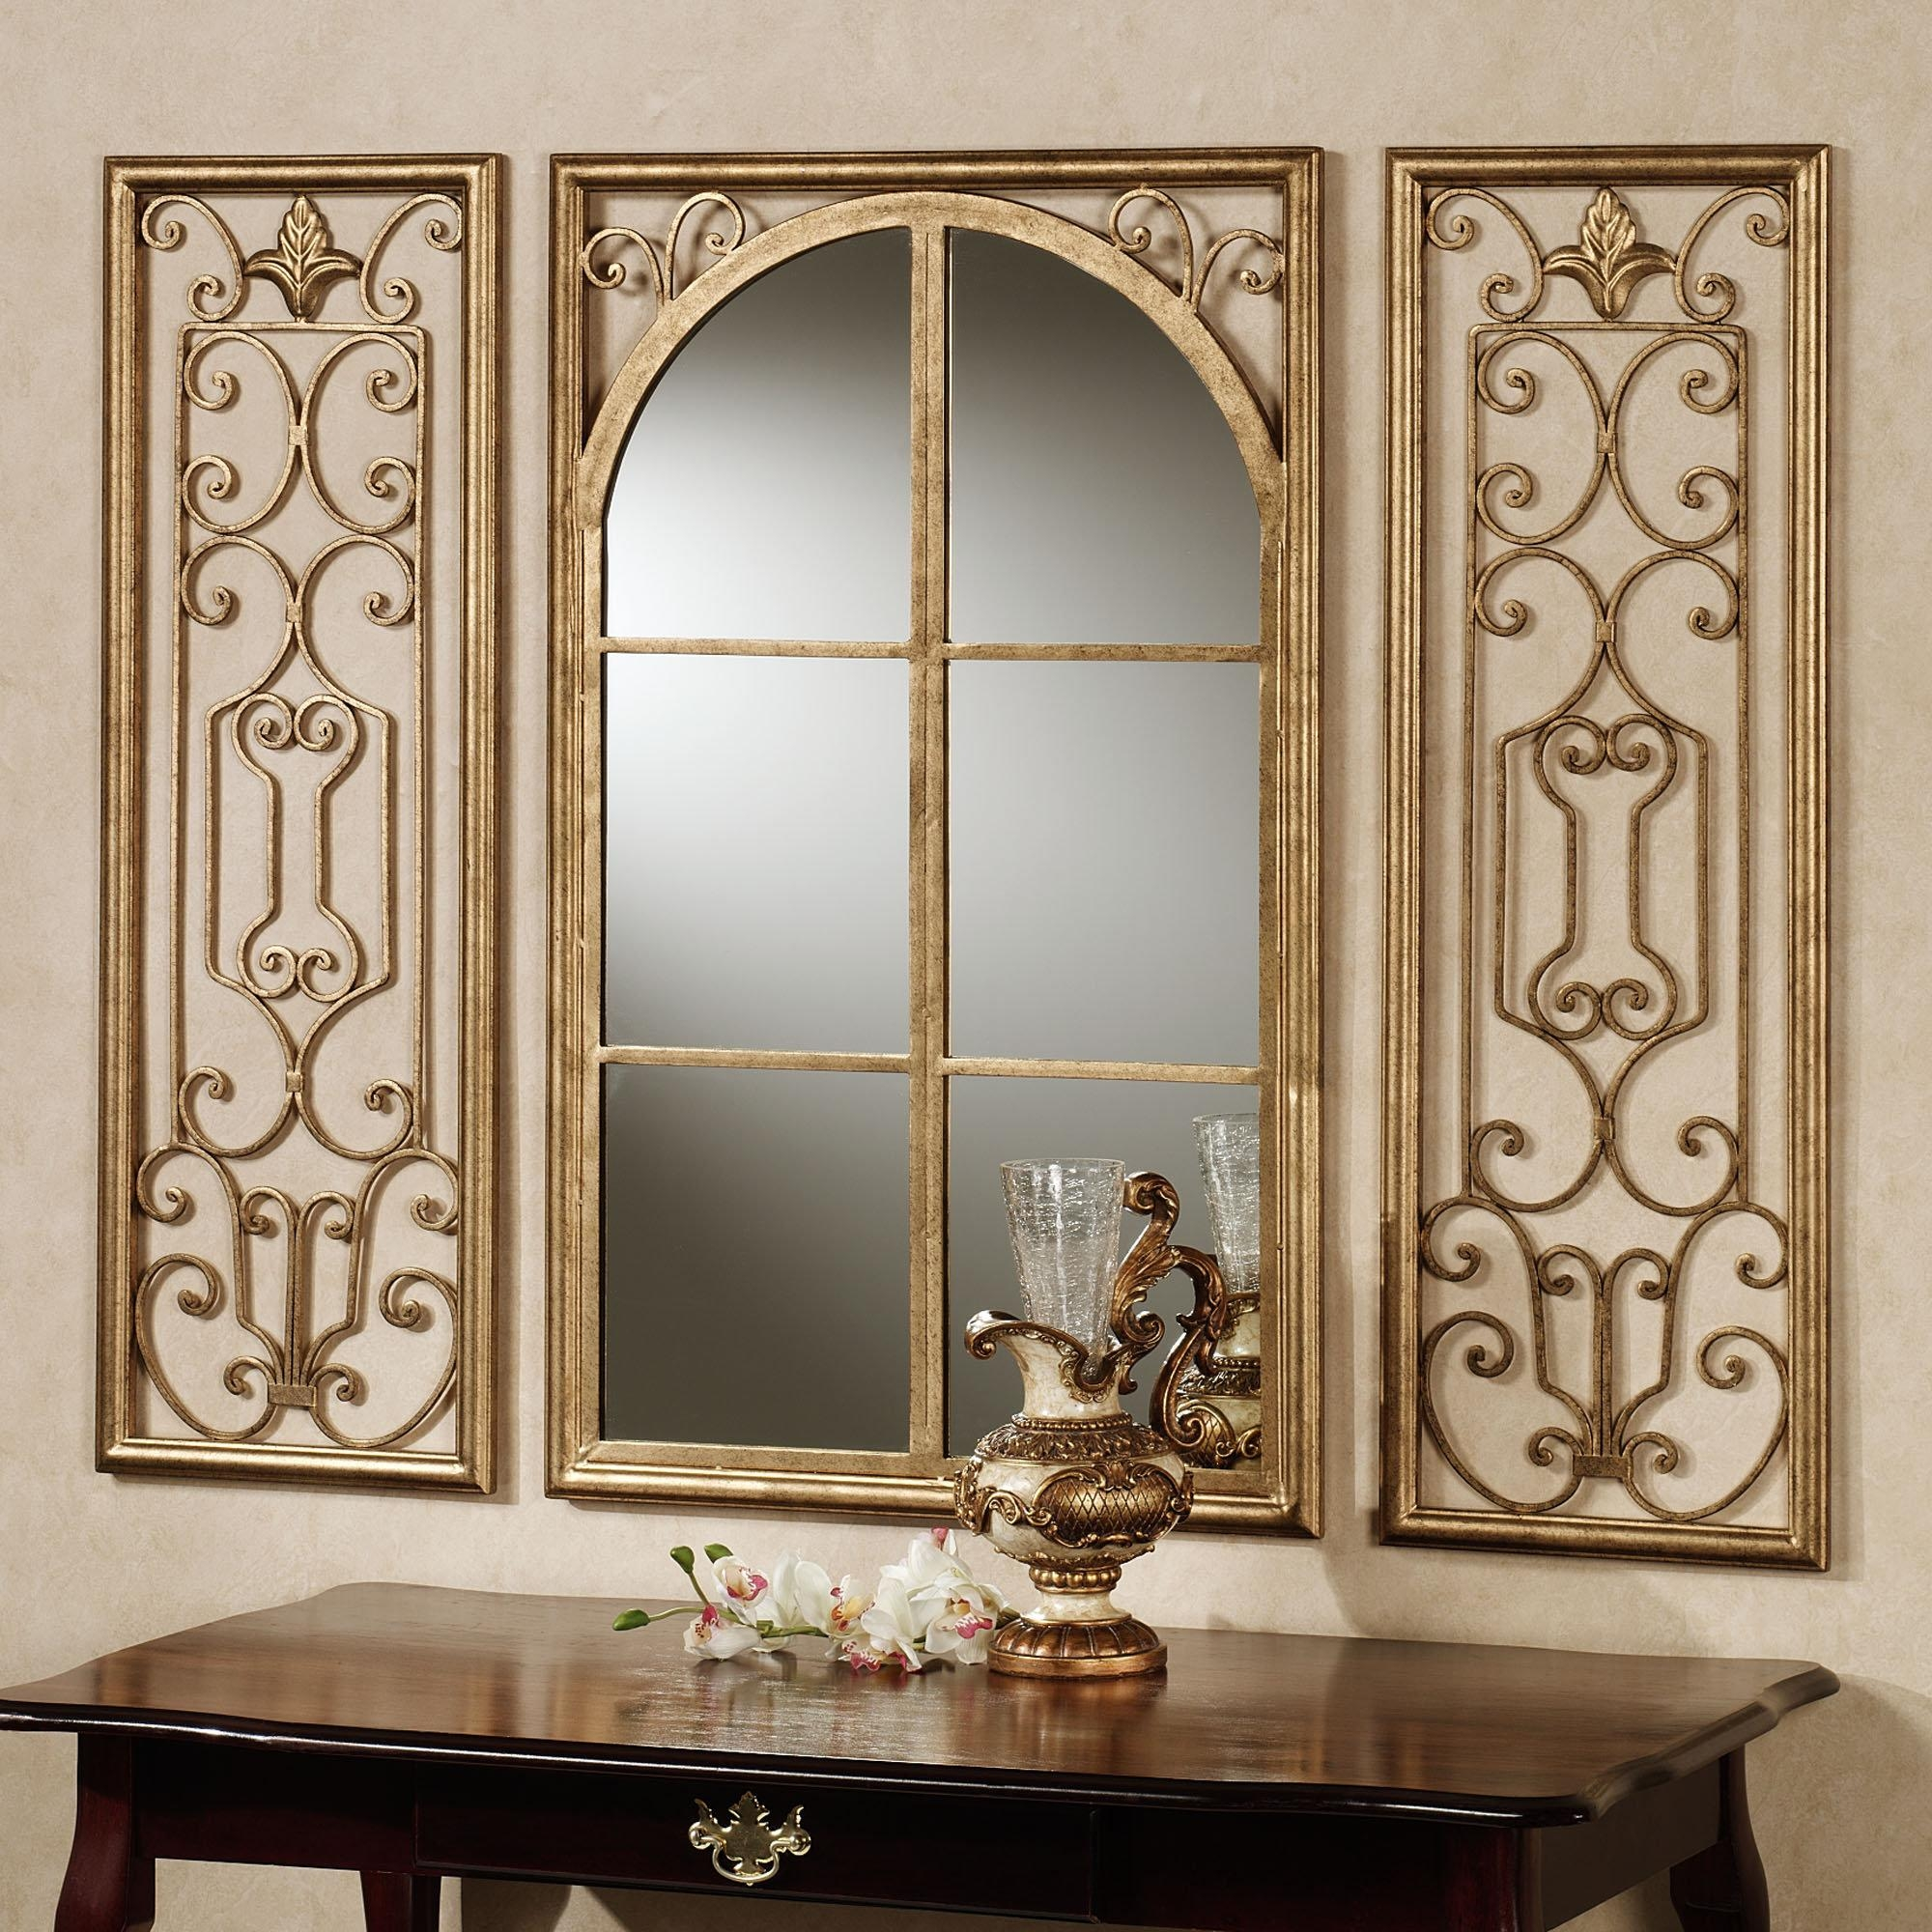 Superb Mirror Walls Deer Tick Chords Ashe Glass Mirror Mirror Inside Decorative Wooden Mirrors (View 9 of 20)